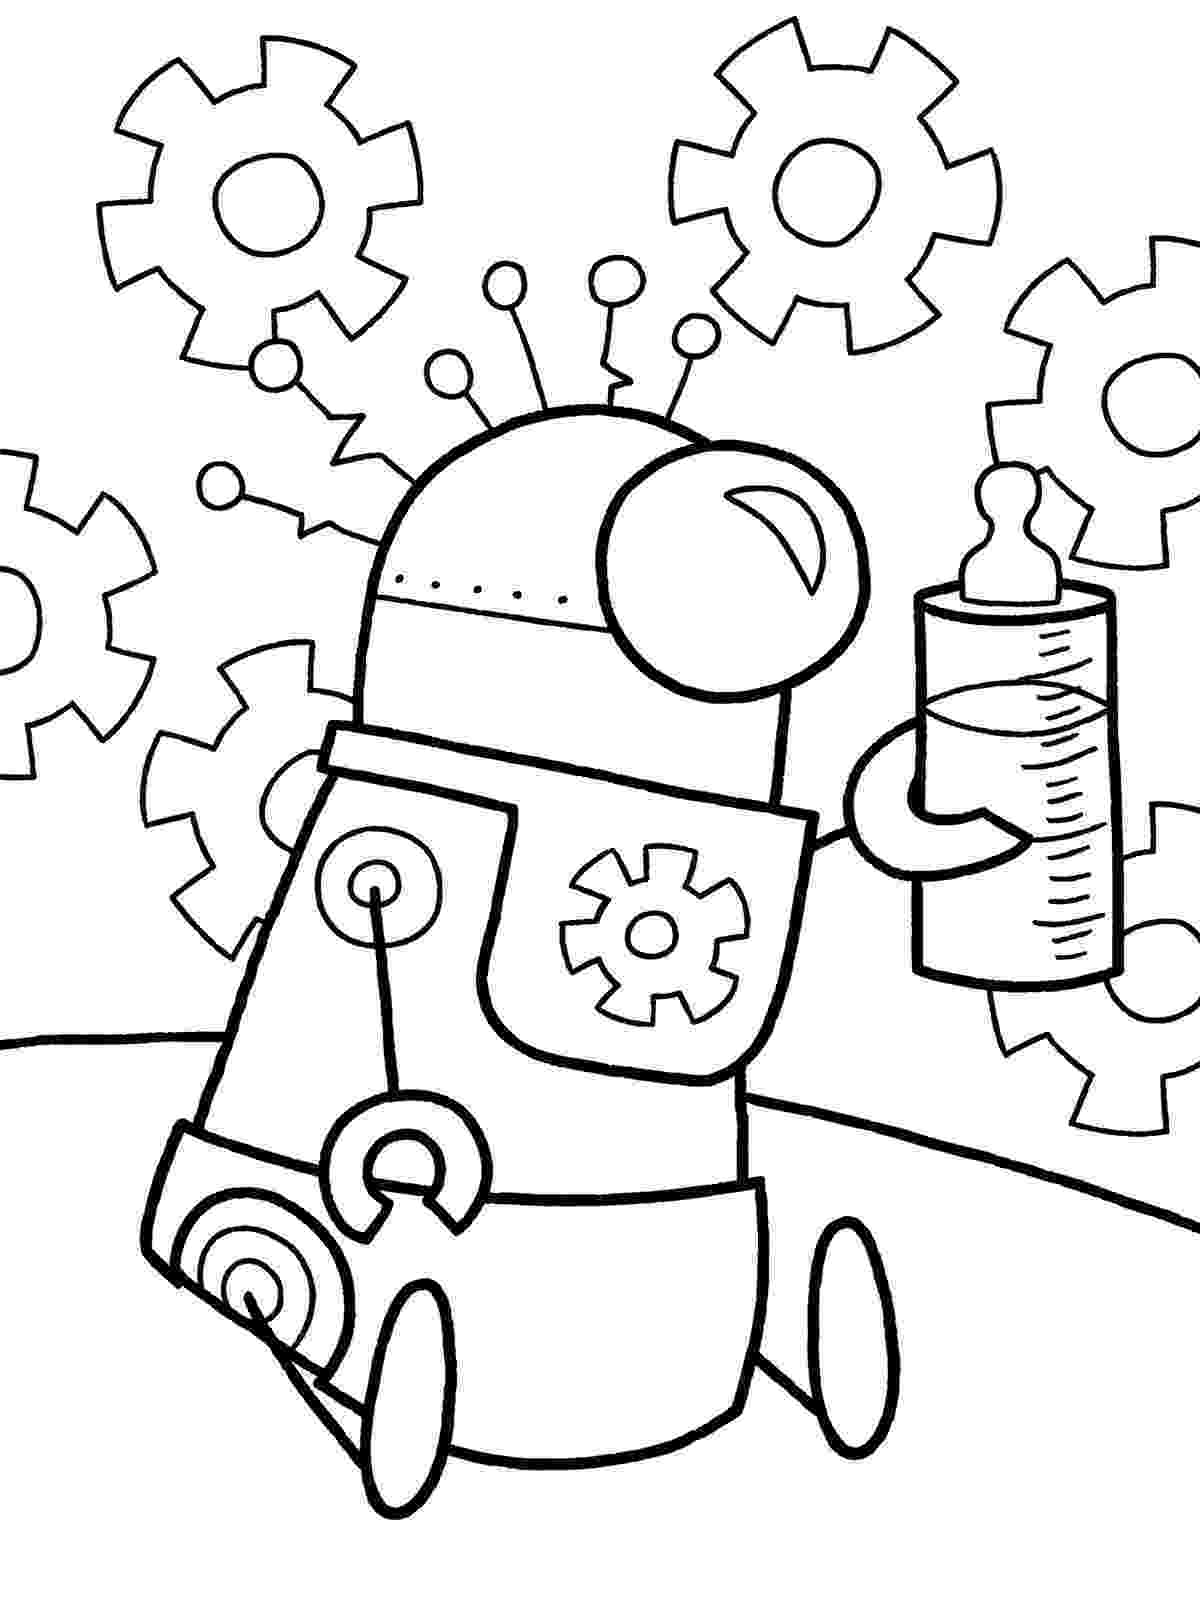 robot coloring sheets belajar mewarnai versi anak cowok let39s learn coloring sheets robot